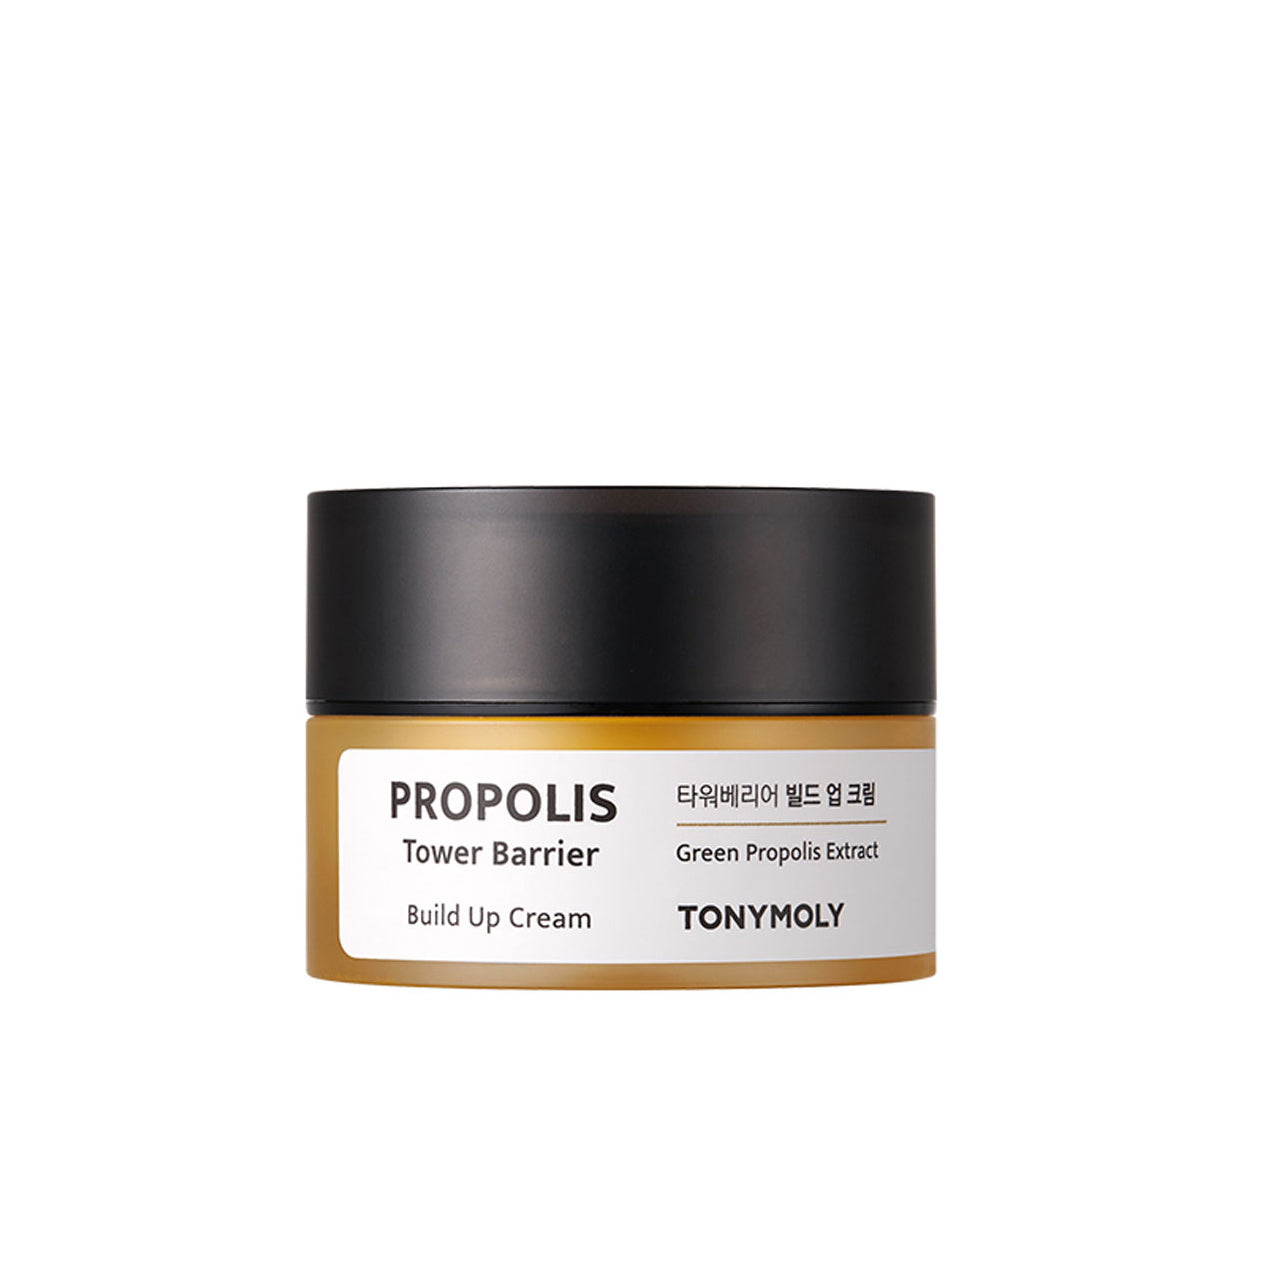 PROPOLIS TOWER BARRIER Build Up CREAM